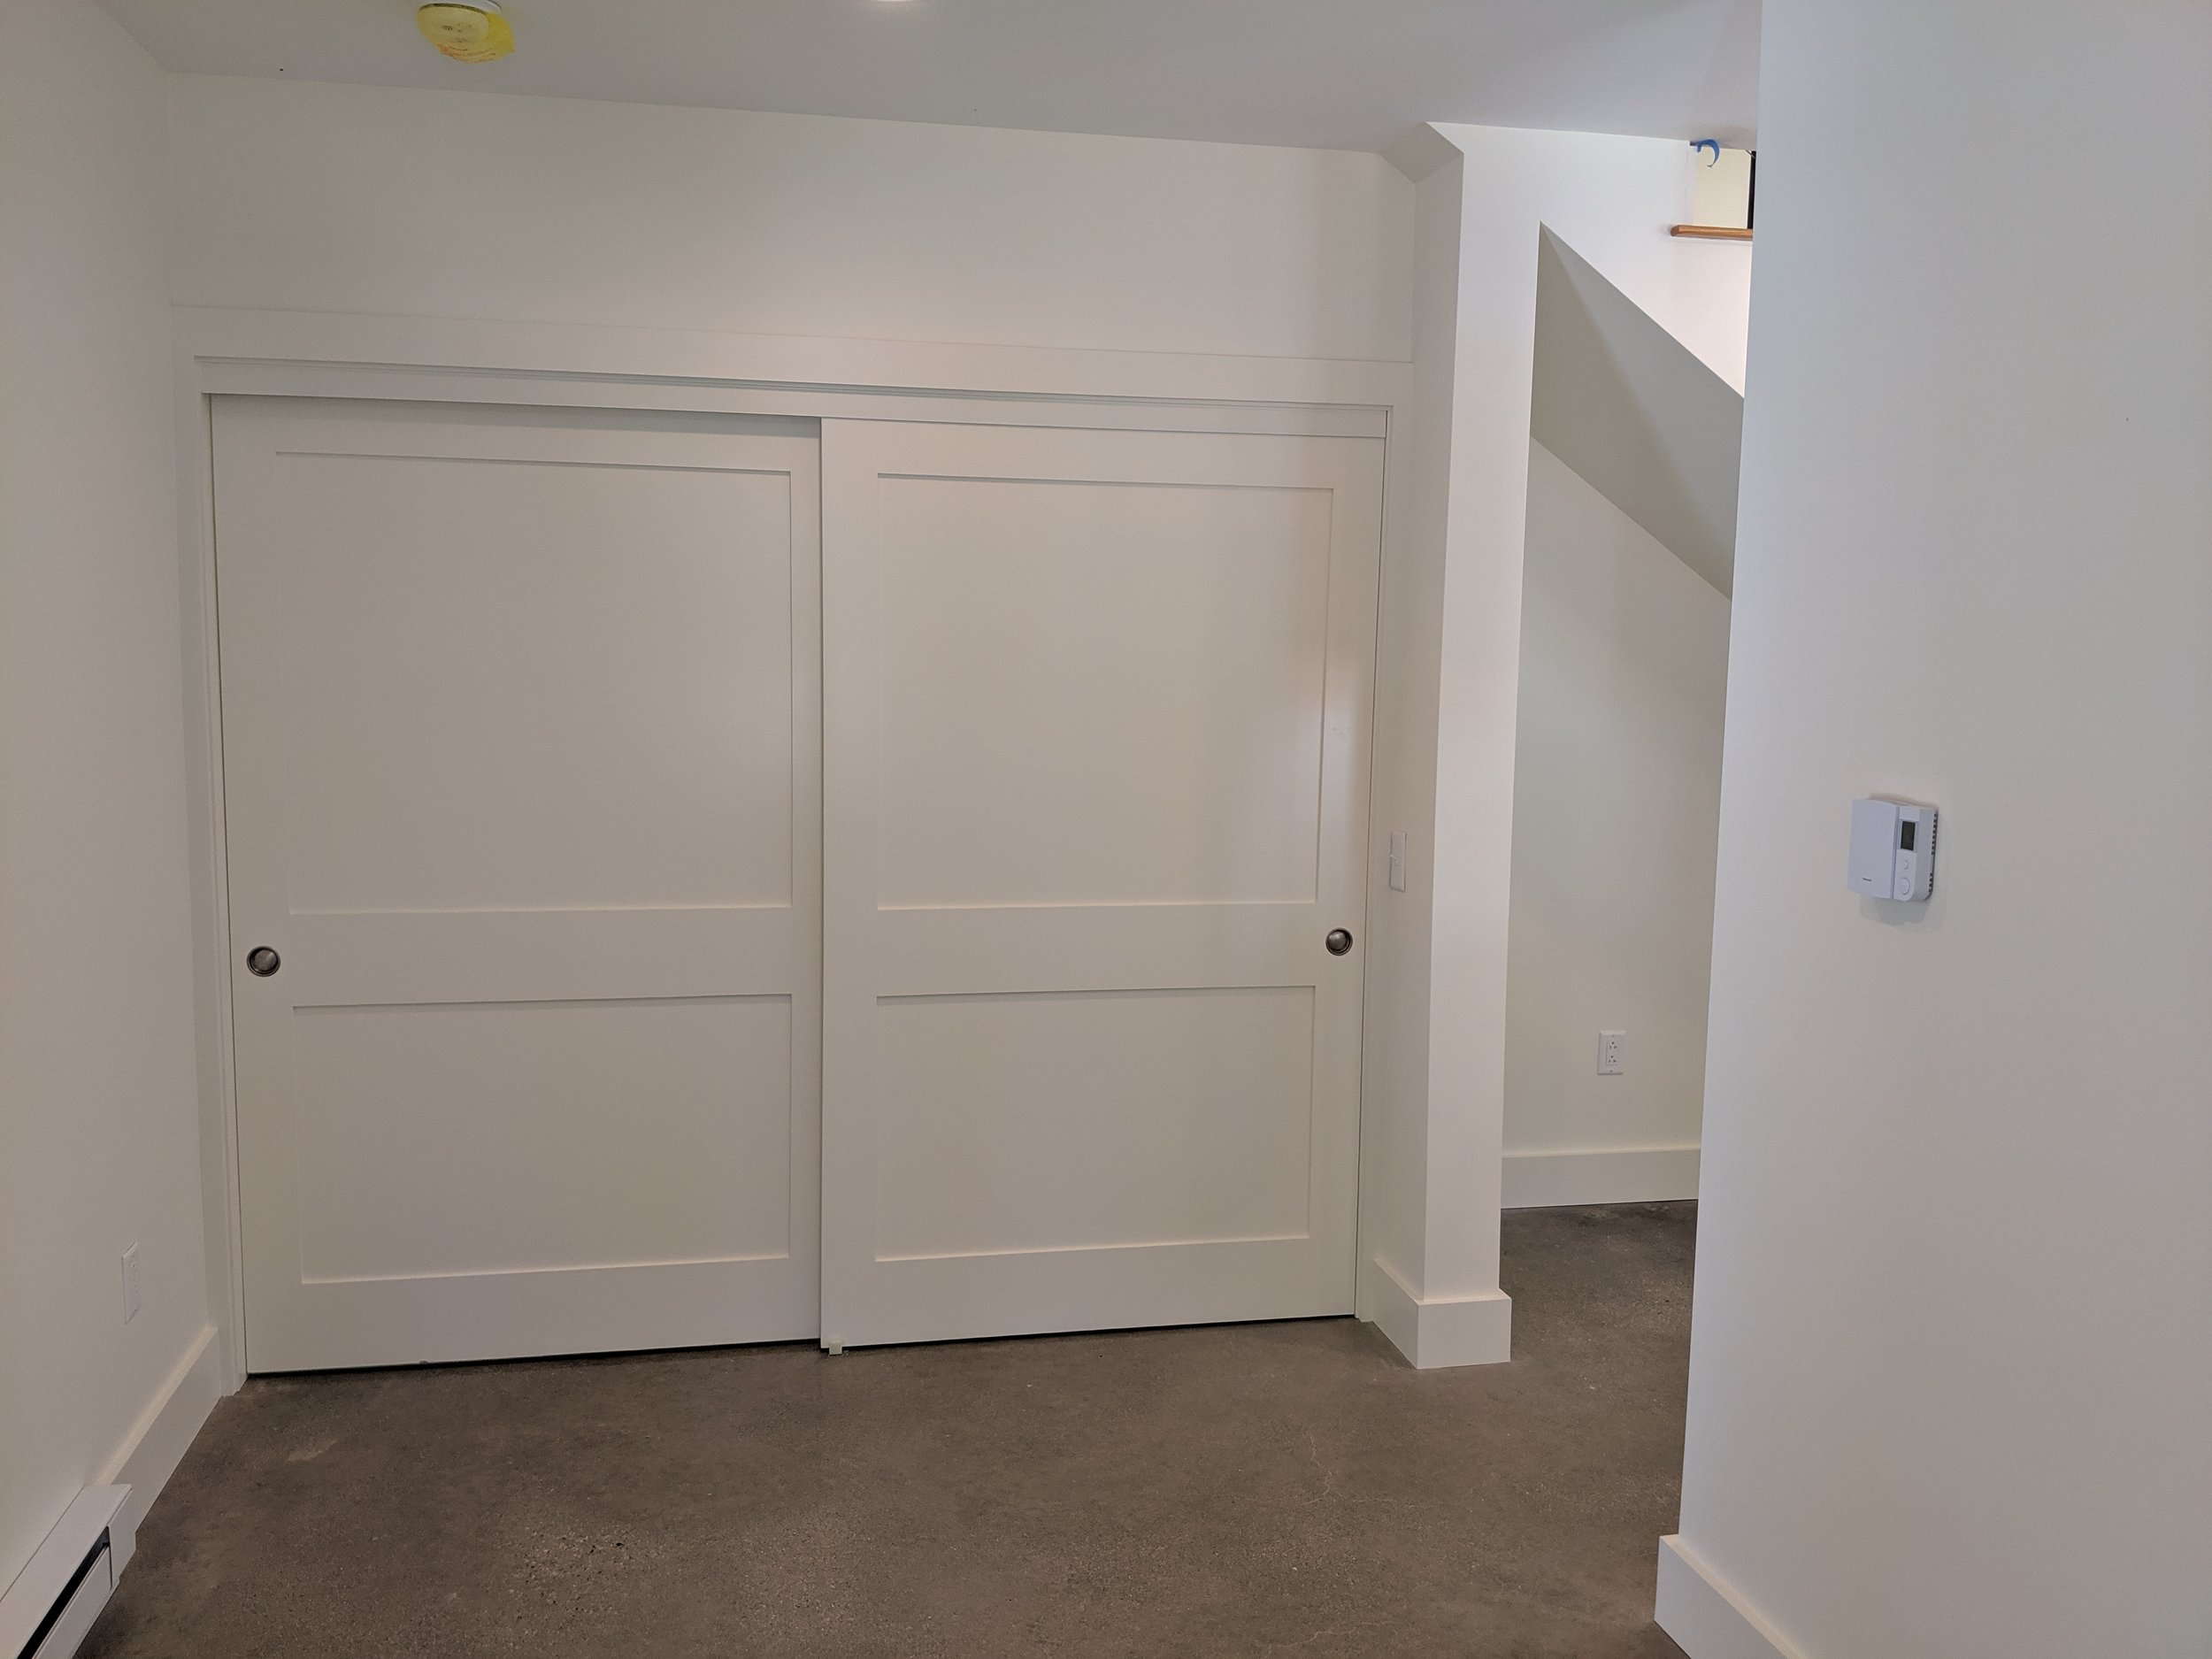 8' Bypass Solid core Doors with Poplar Trim, Polished Concrete Floors